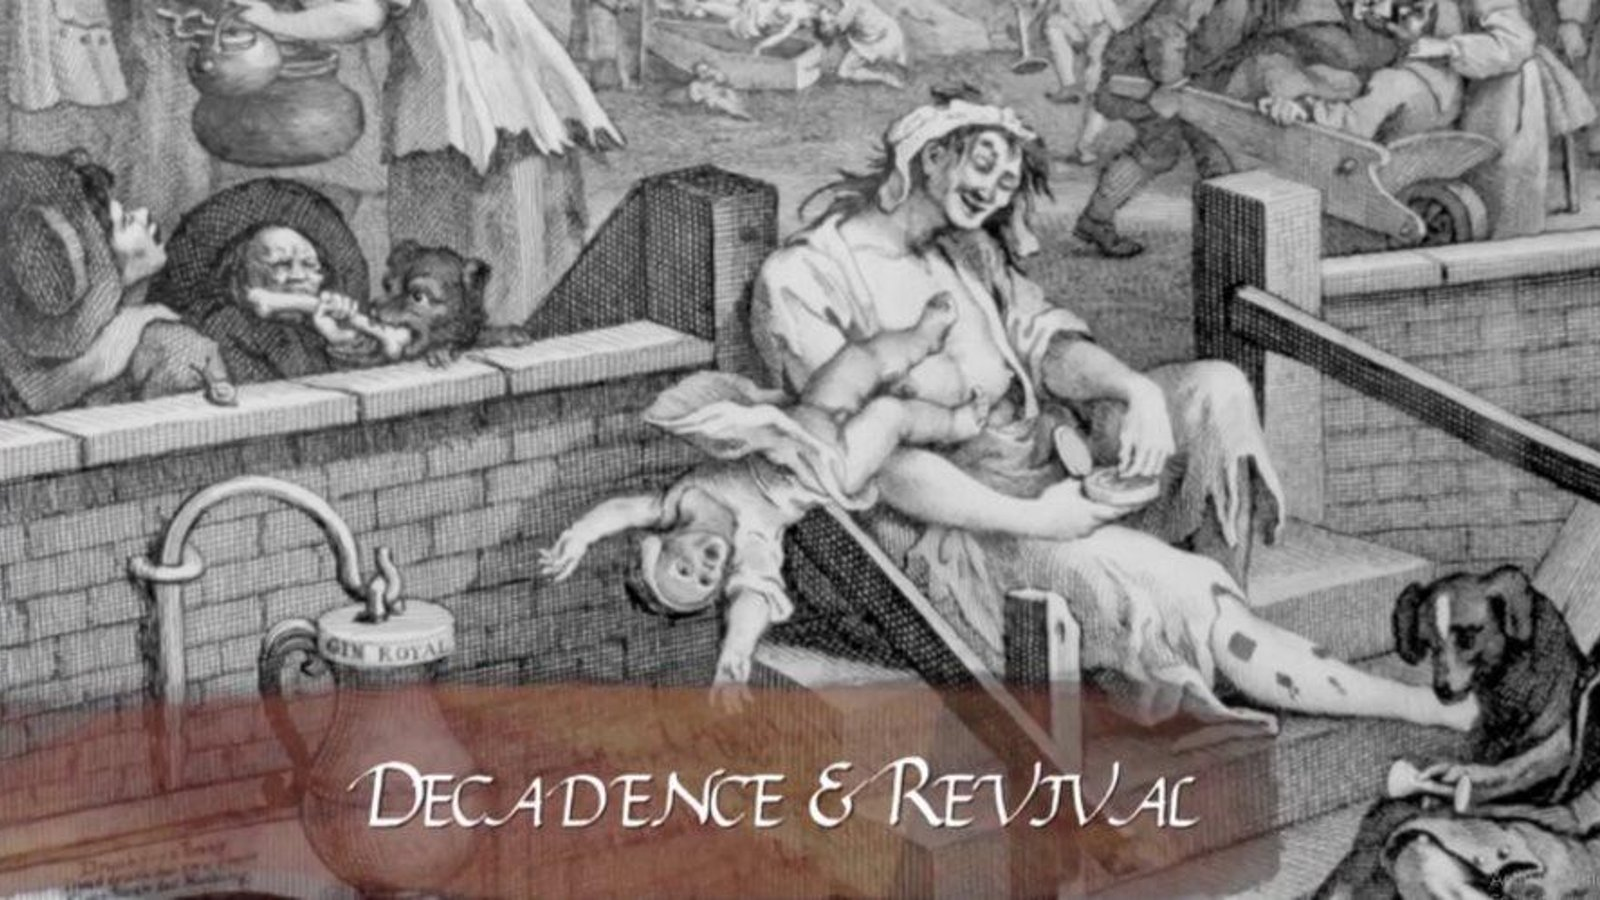 Decadence and Revival - Transformation of a Society